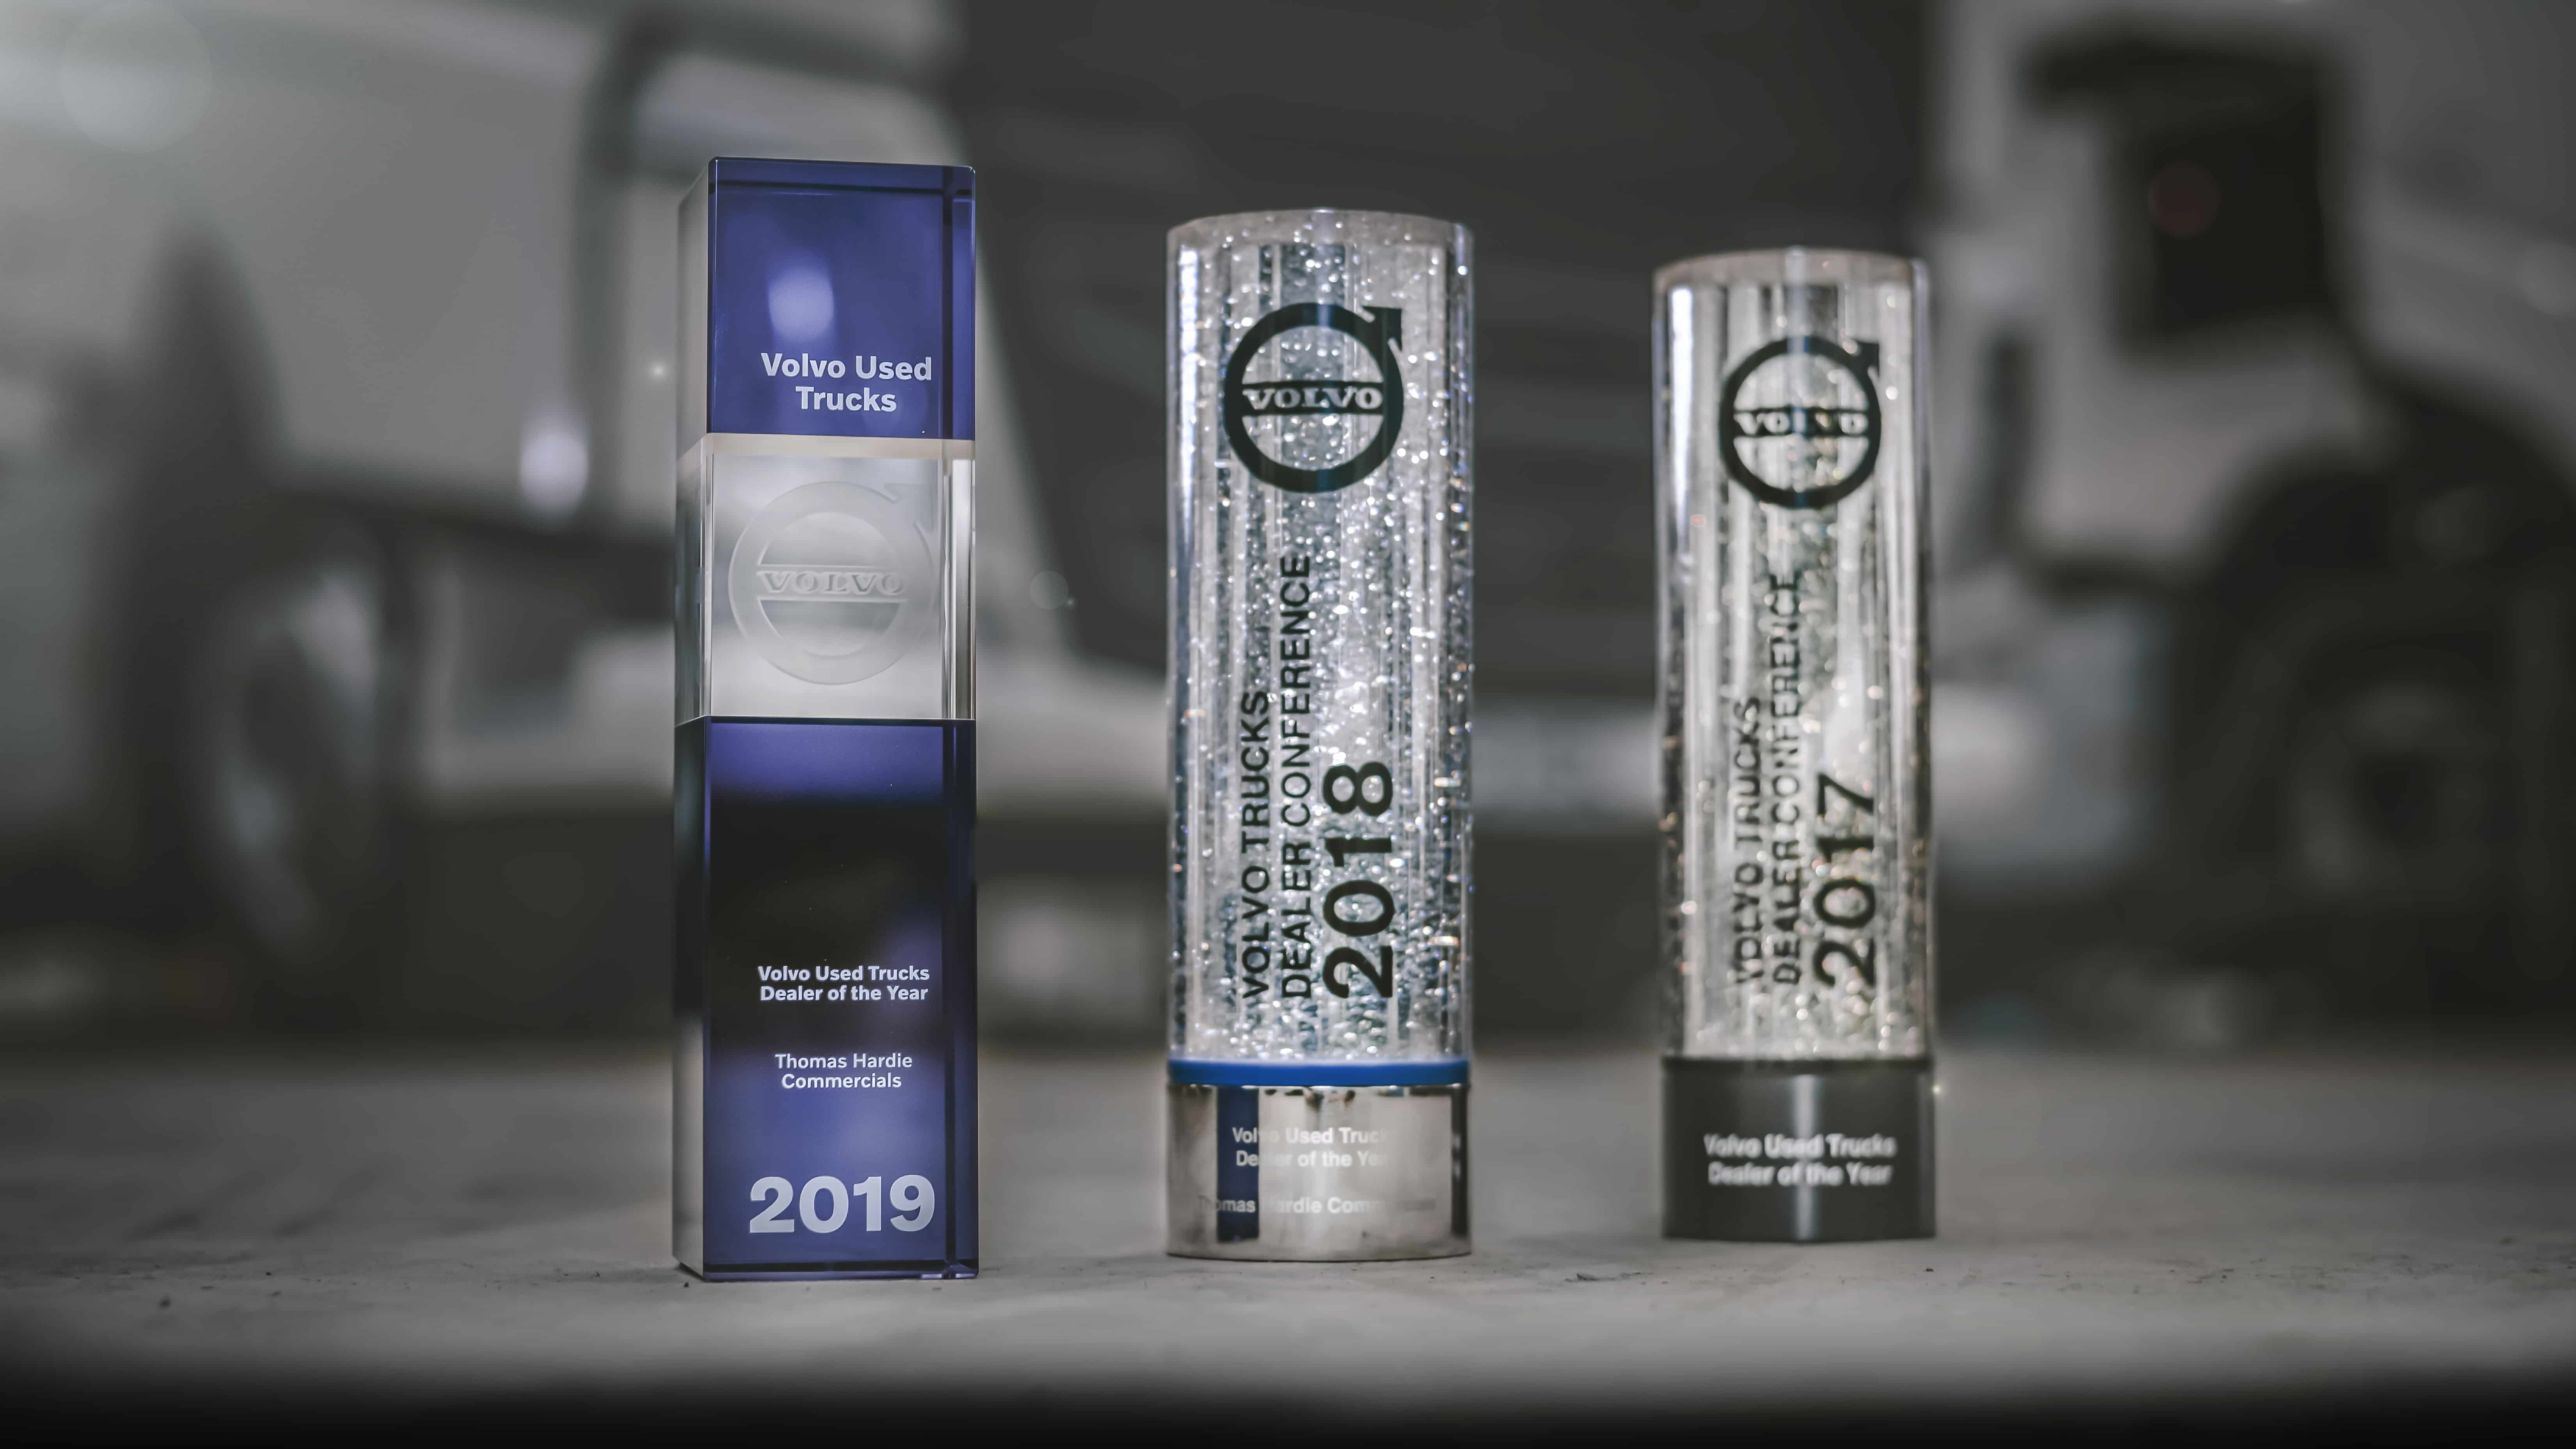 Volvo Trucks, 'Dealer of the Year Award 2018′